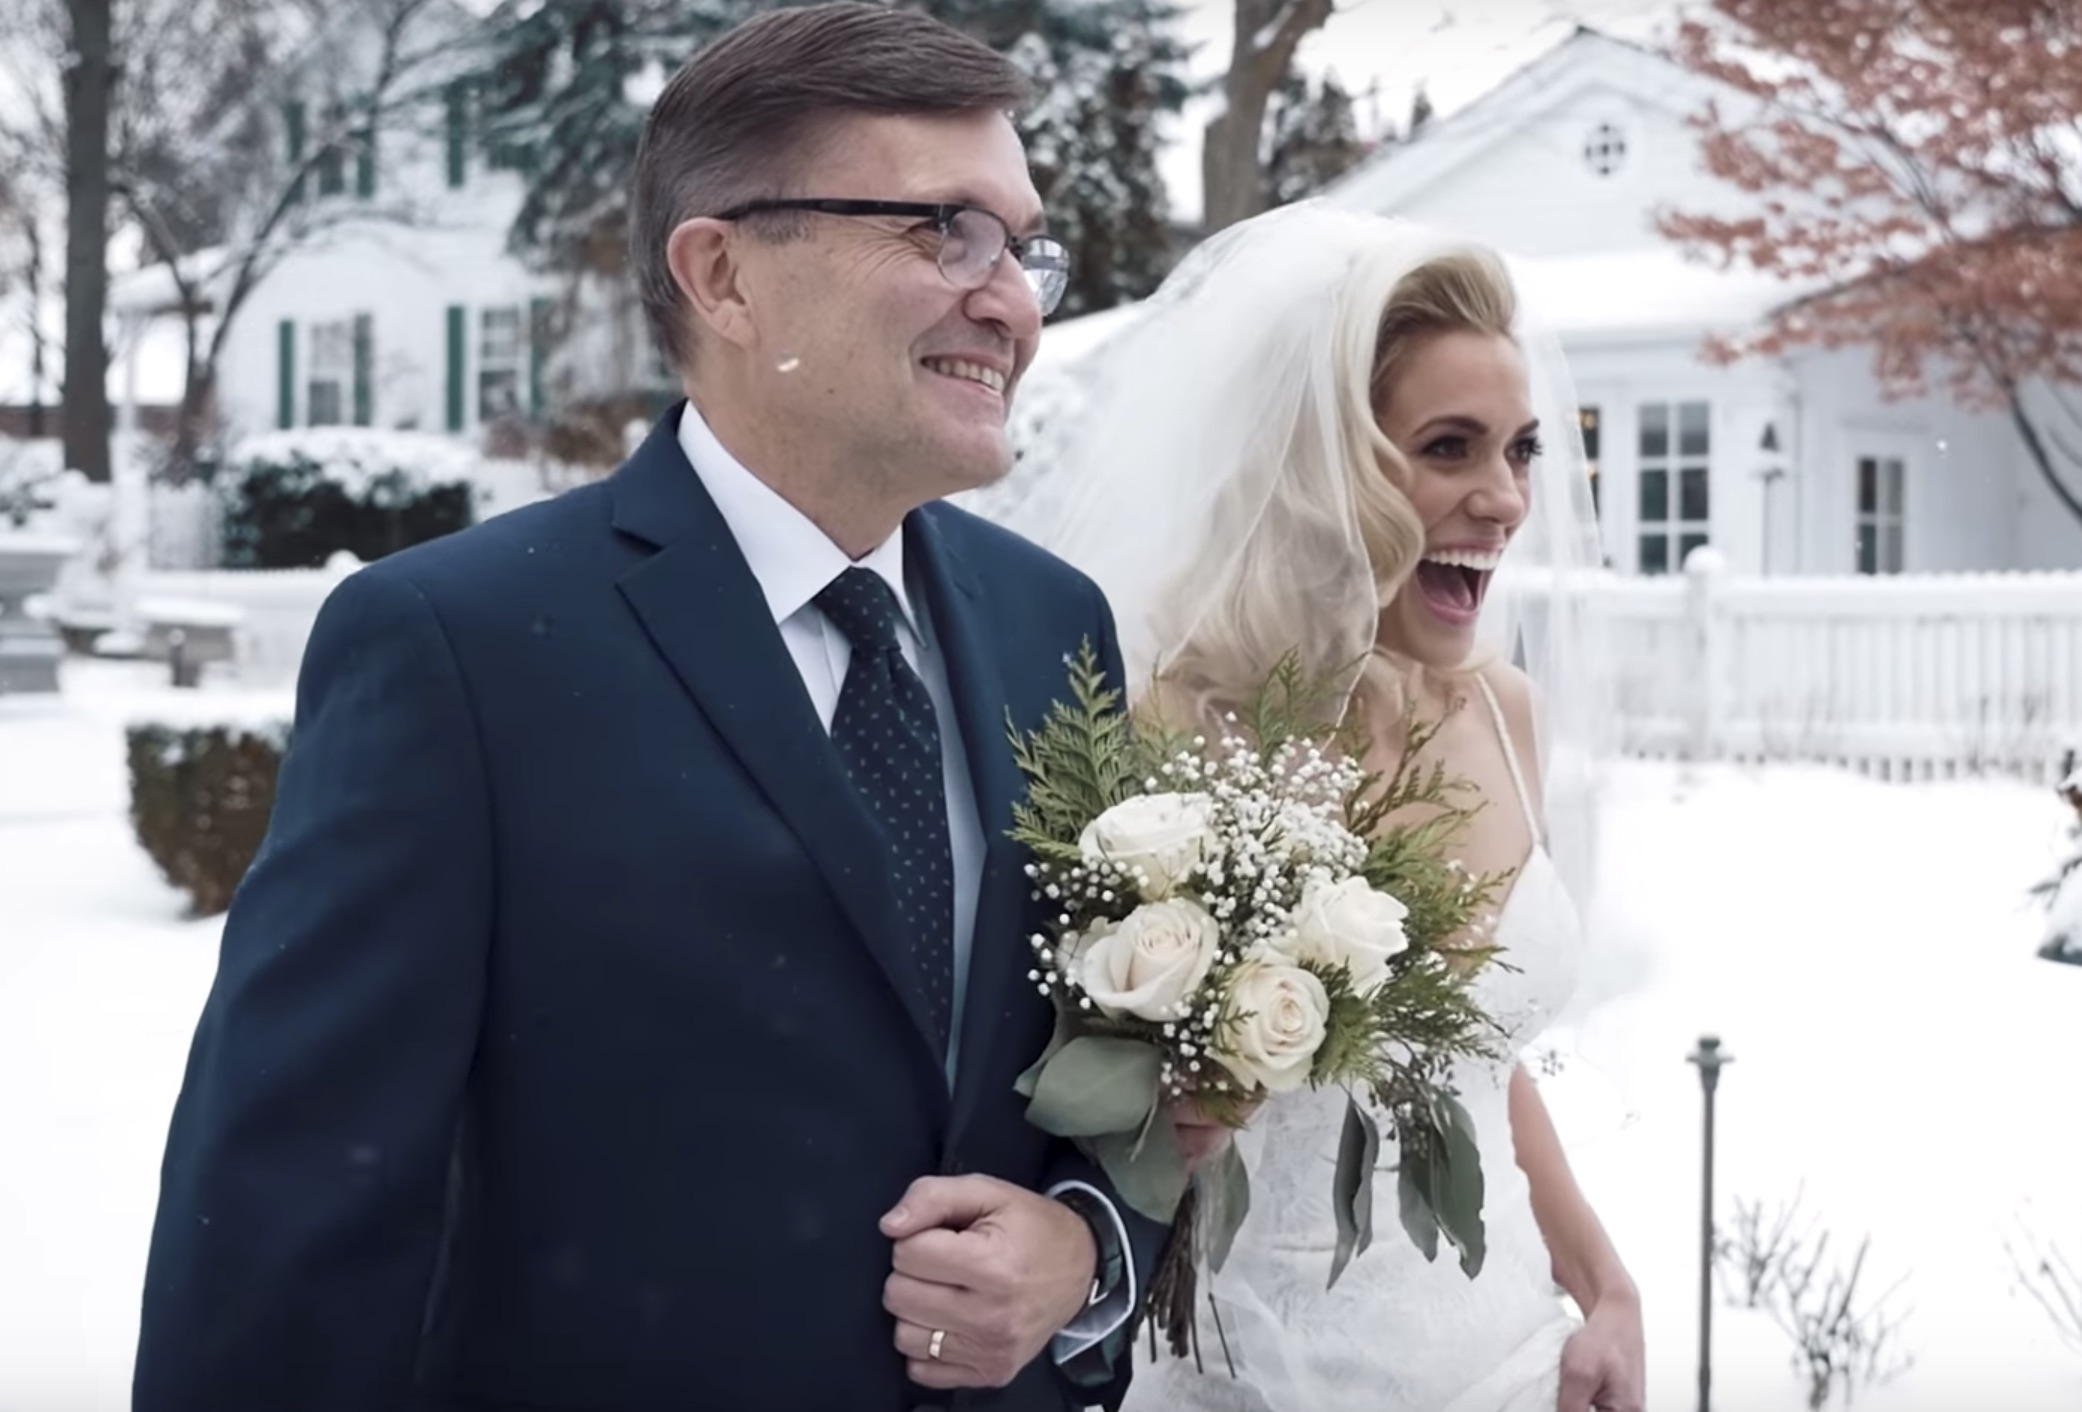 The Most Magical Christmas Wedding You Will Ever See